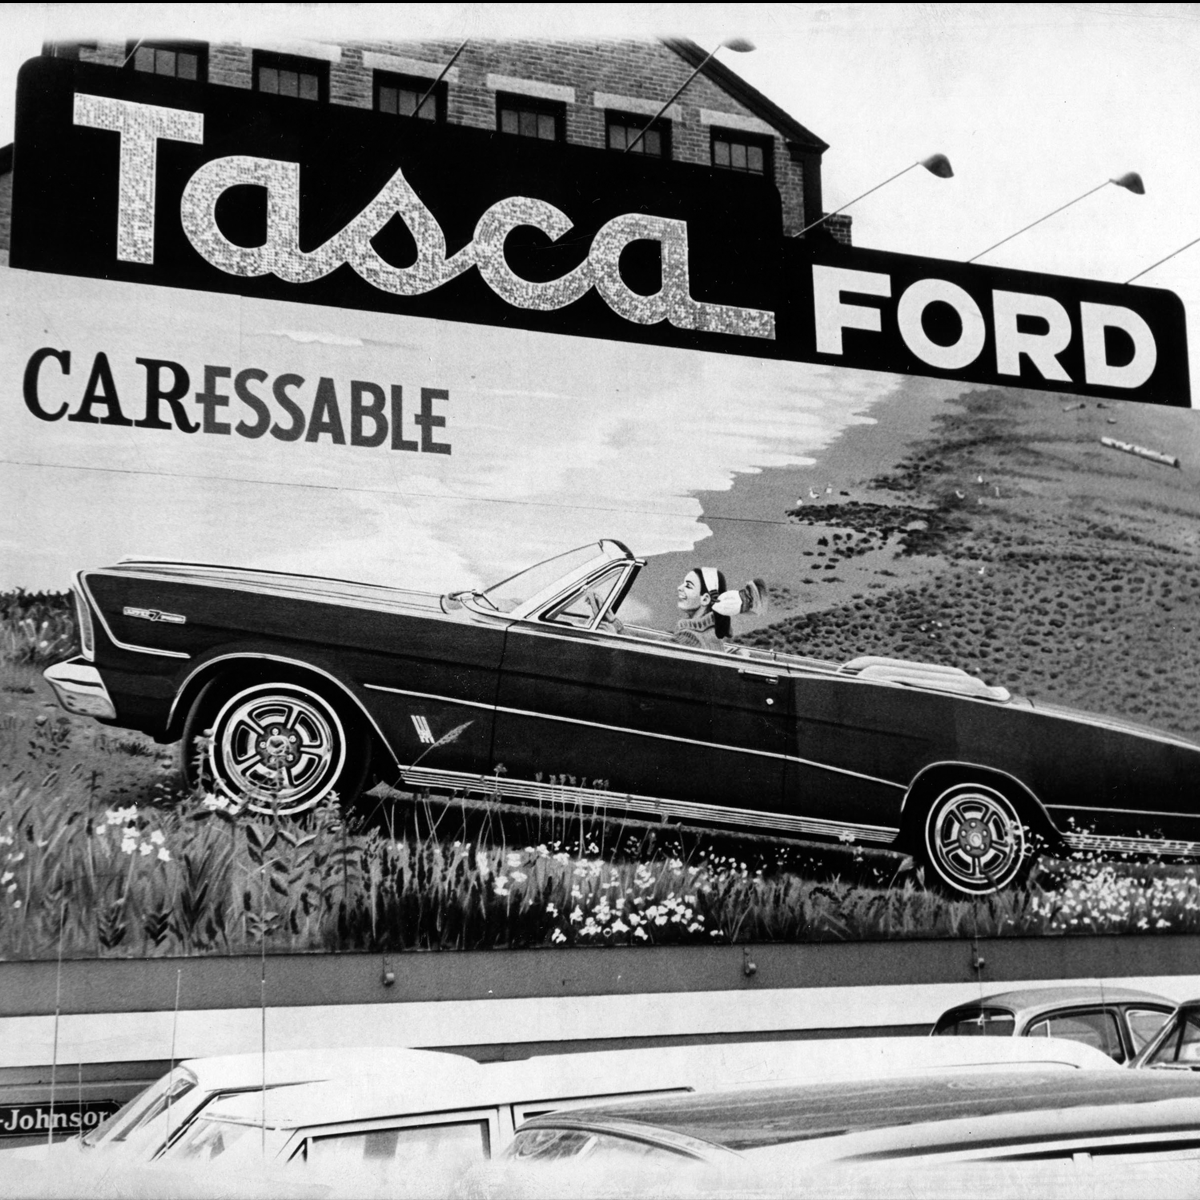 Tasca Ford Billboard Throwback Throwback Funfact Tbt Throwbackthursday Tascathrowback Carfacts Carparts Autoparts Driv Car Facts Fast Cars Car Dealer